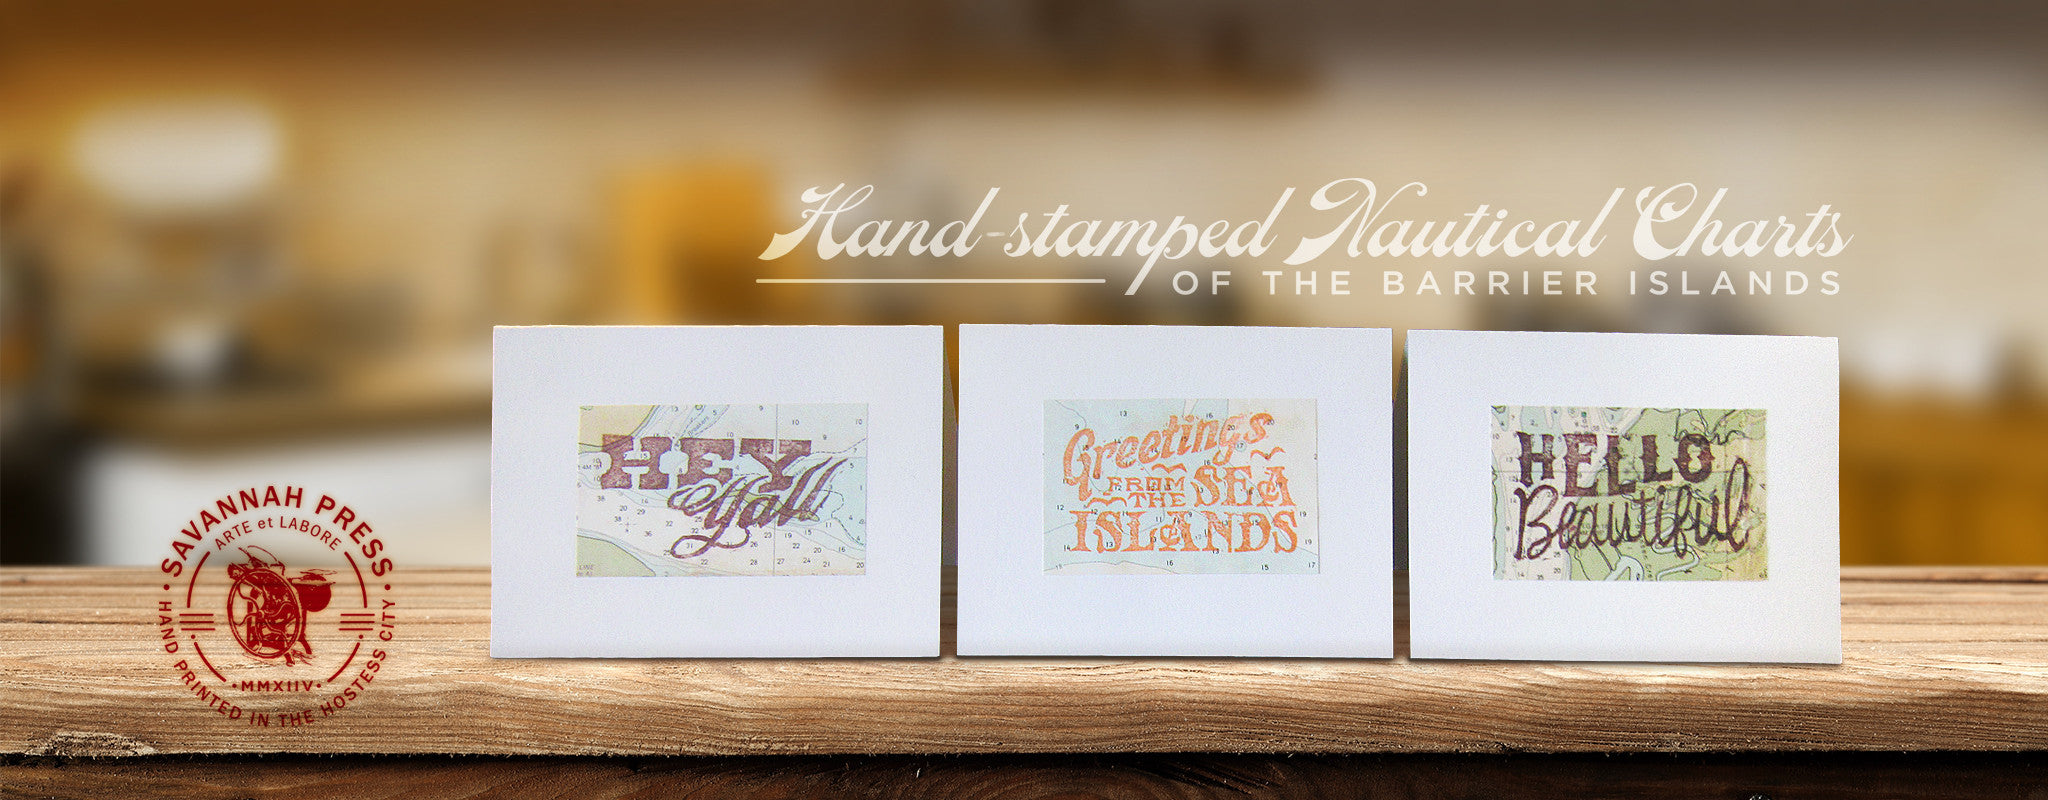 Hand Stamped Nautical Charts